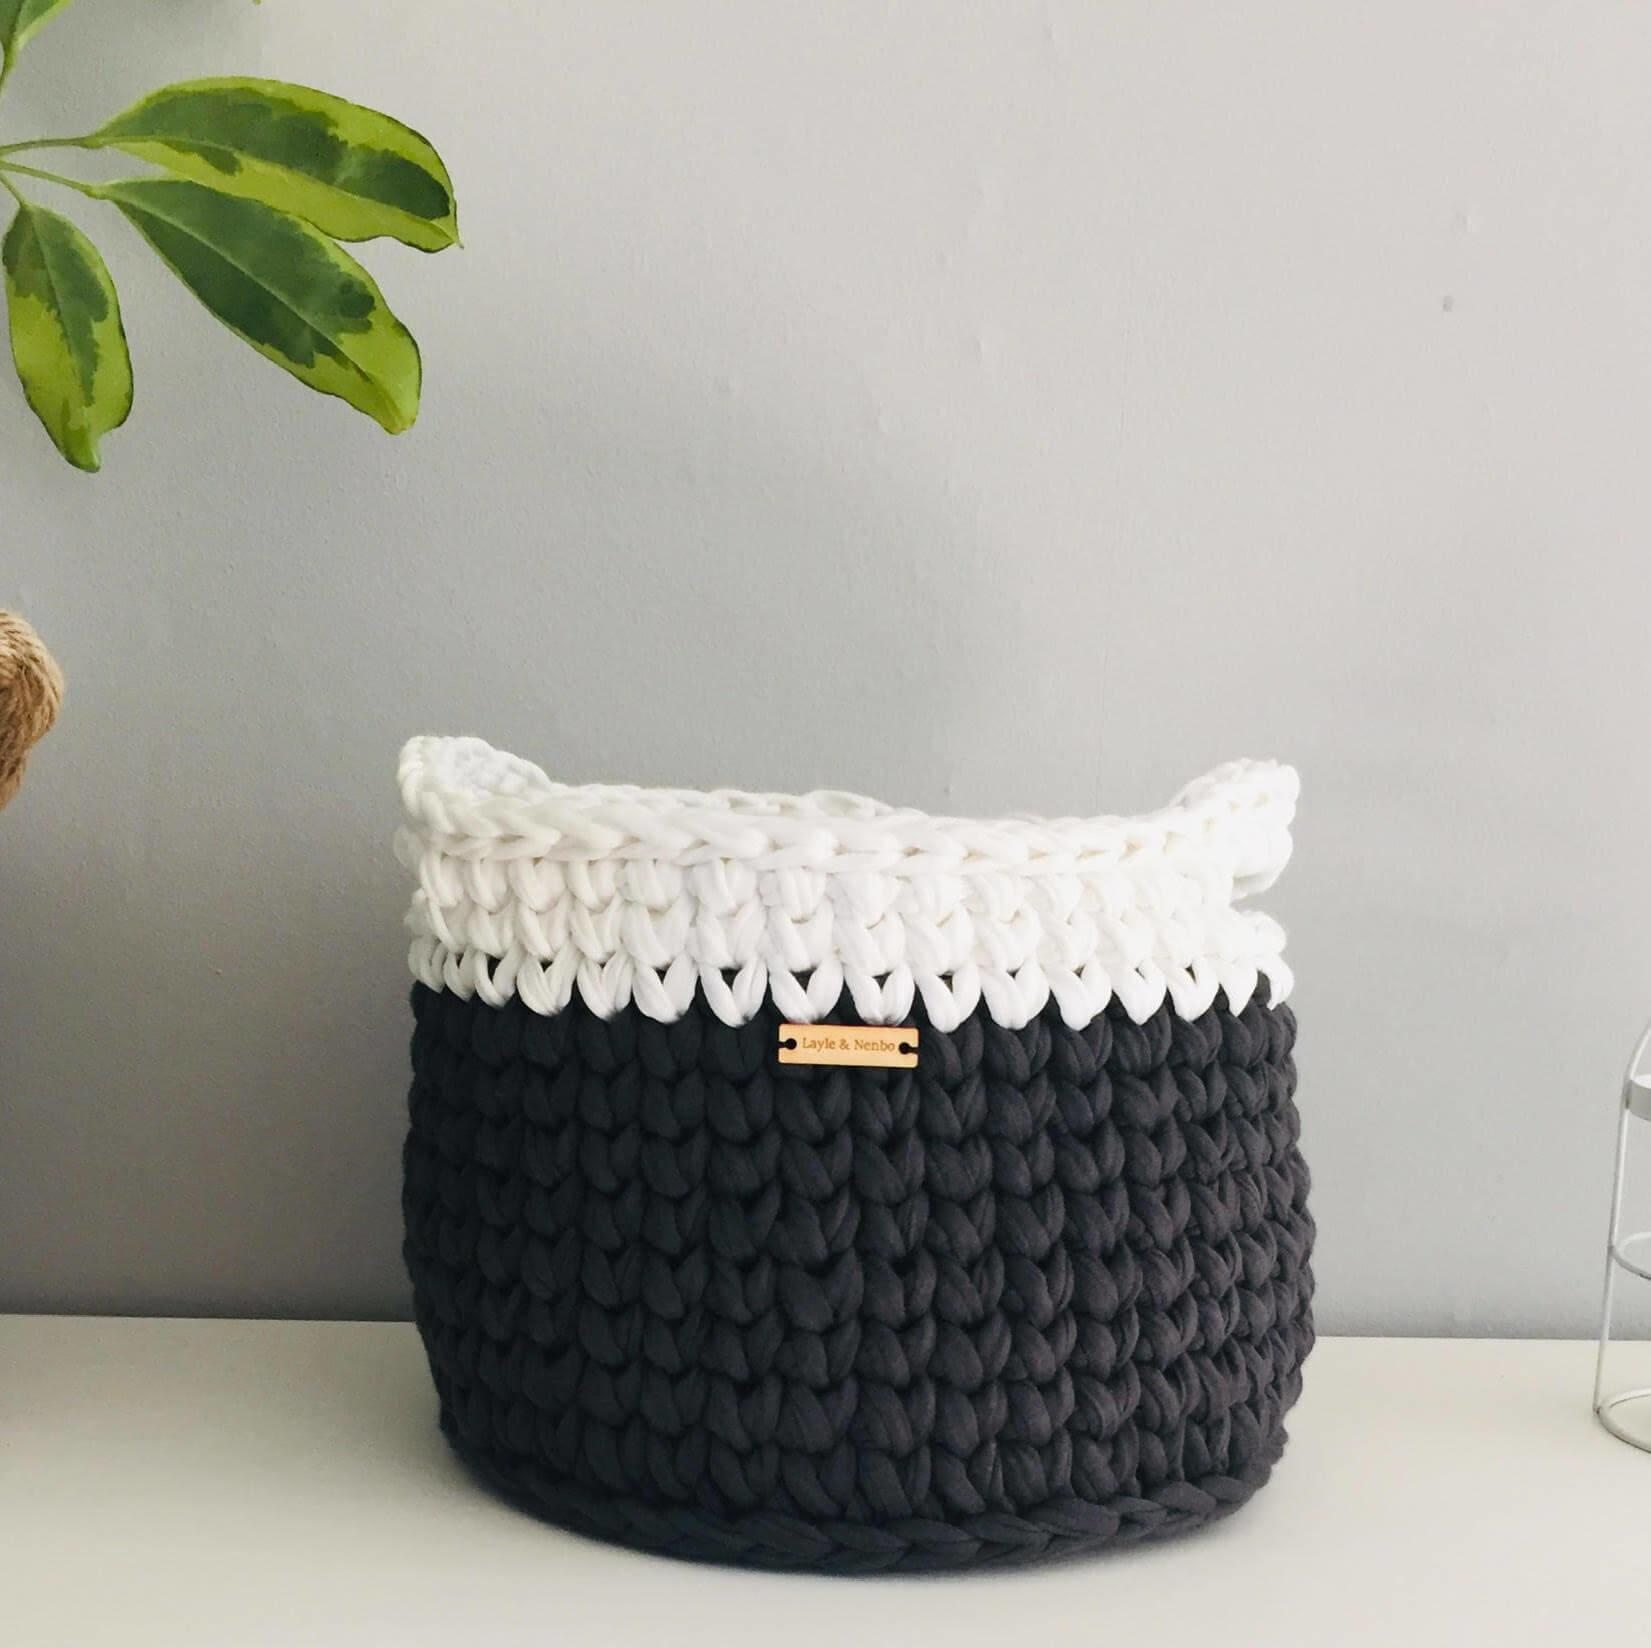 Recycled Crochet Baskets